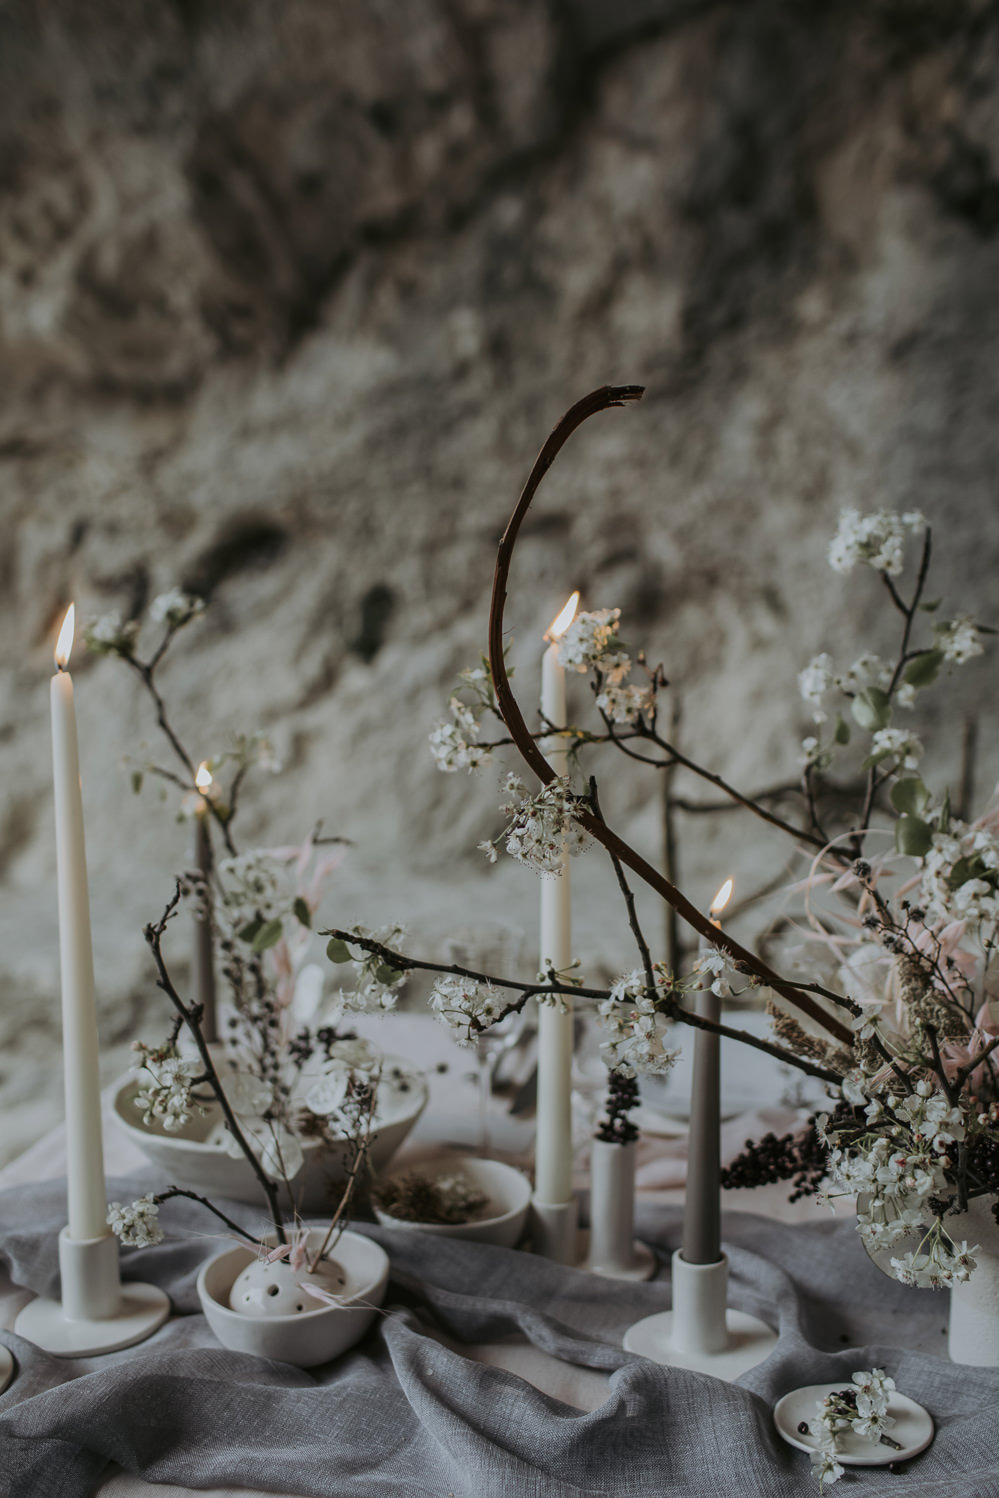 Tablescape Table Decor Candles Branches Natural Wild Neutrals Linen Cave Wedding Ideas Vanessa Illi Photographer